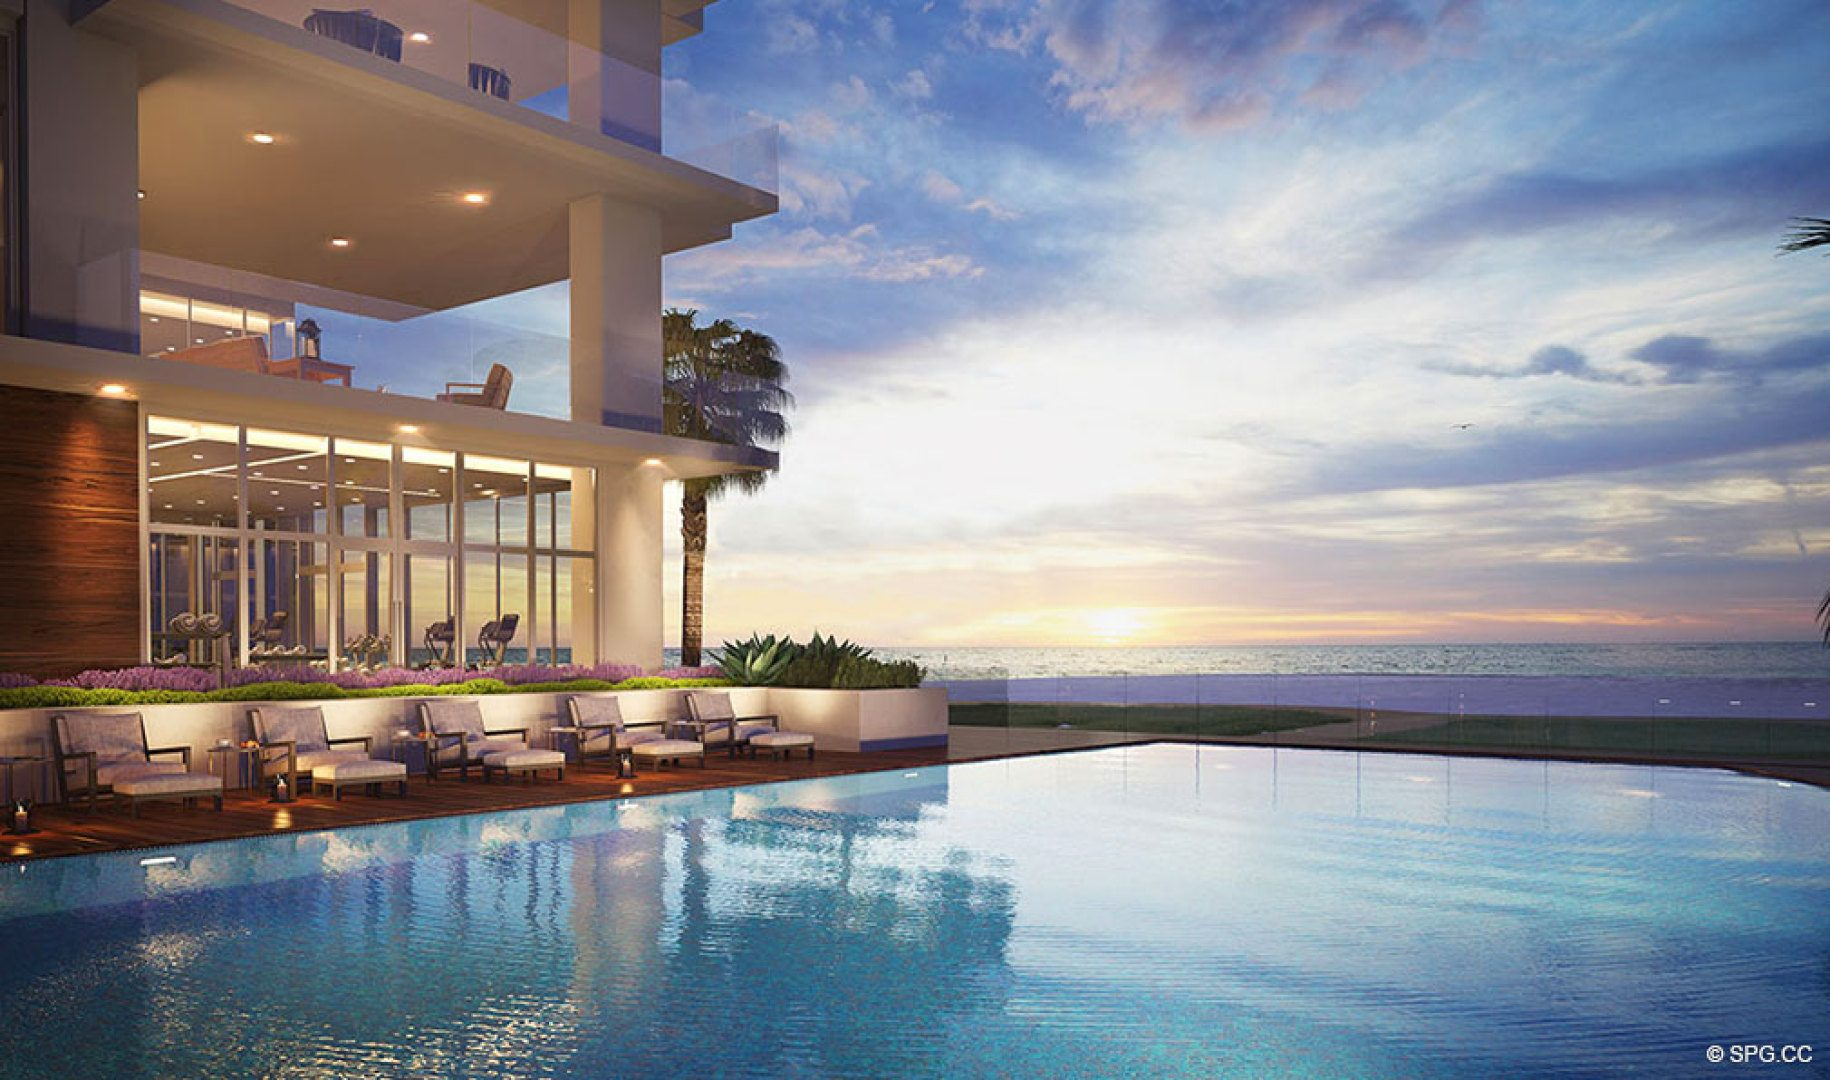 Pool Area Sunrises at 5000 North Ocean, Luxury Oceanfront Condos in Riviera Beach